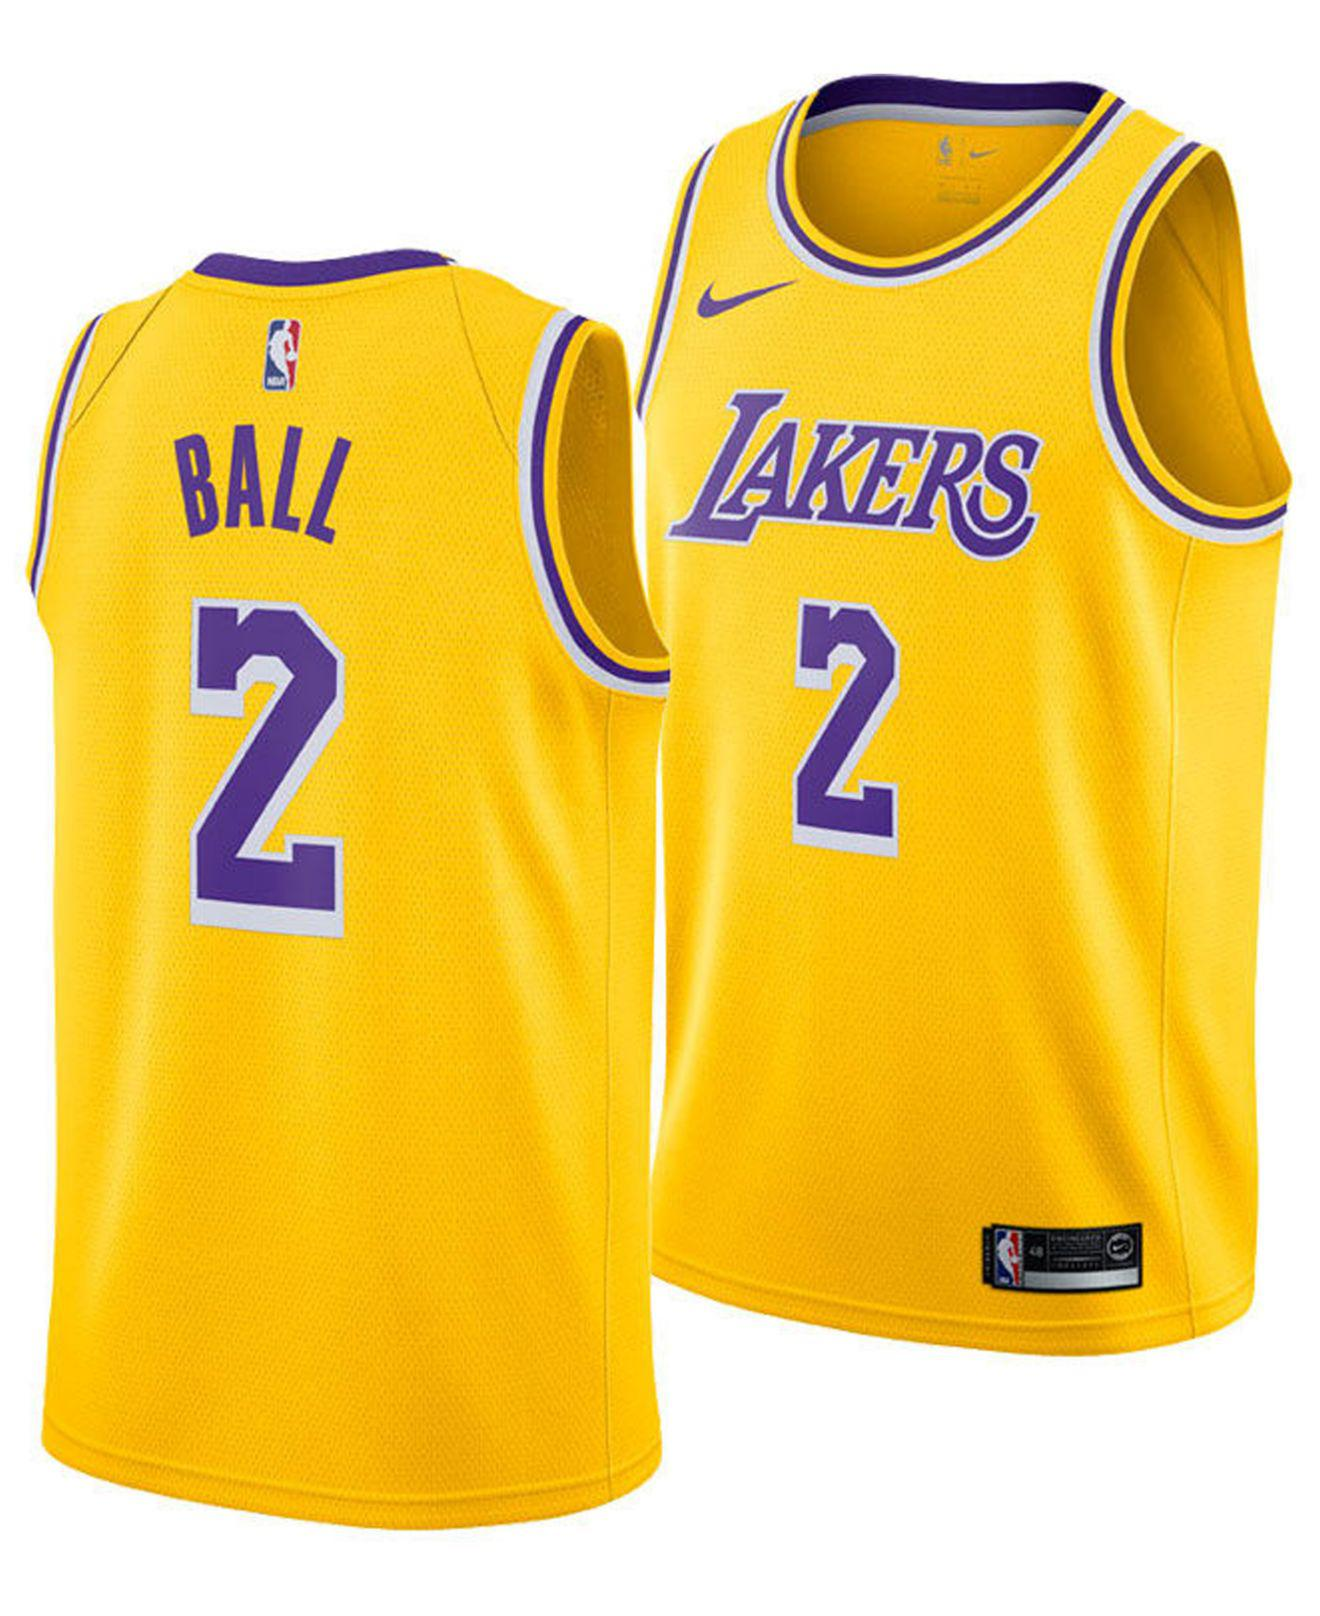 5ac724f44 Nike. Men s Metallic Lonzo Ball Los Angeles Lakers Icon Swingman Jersey